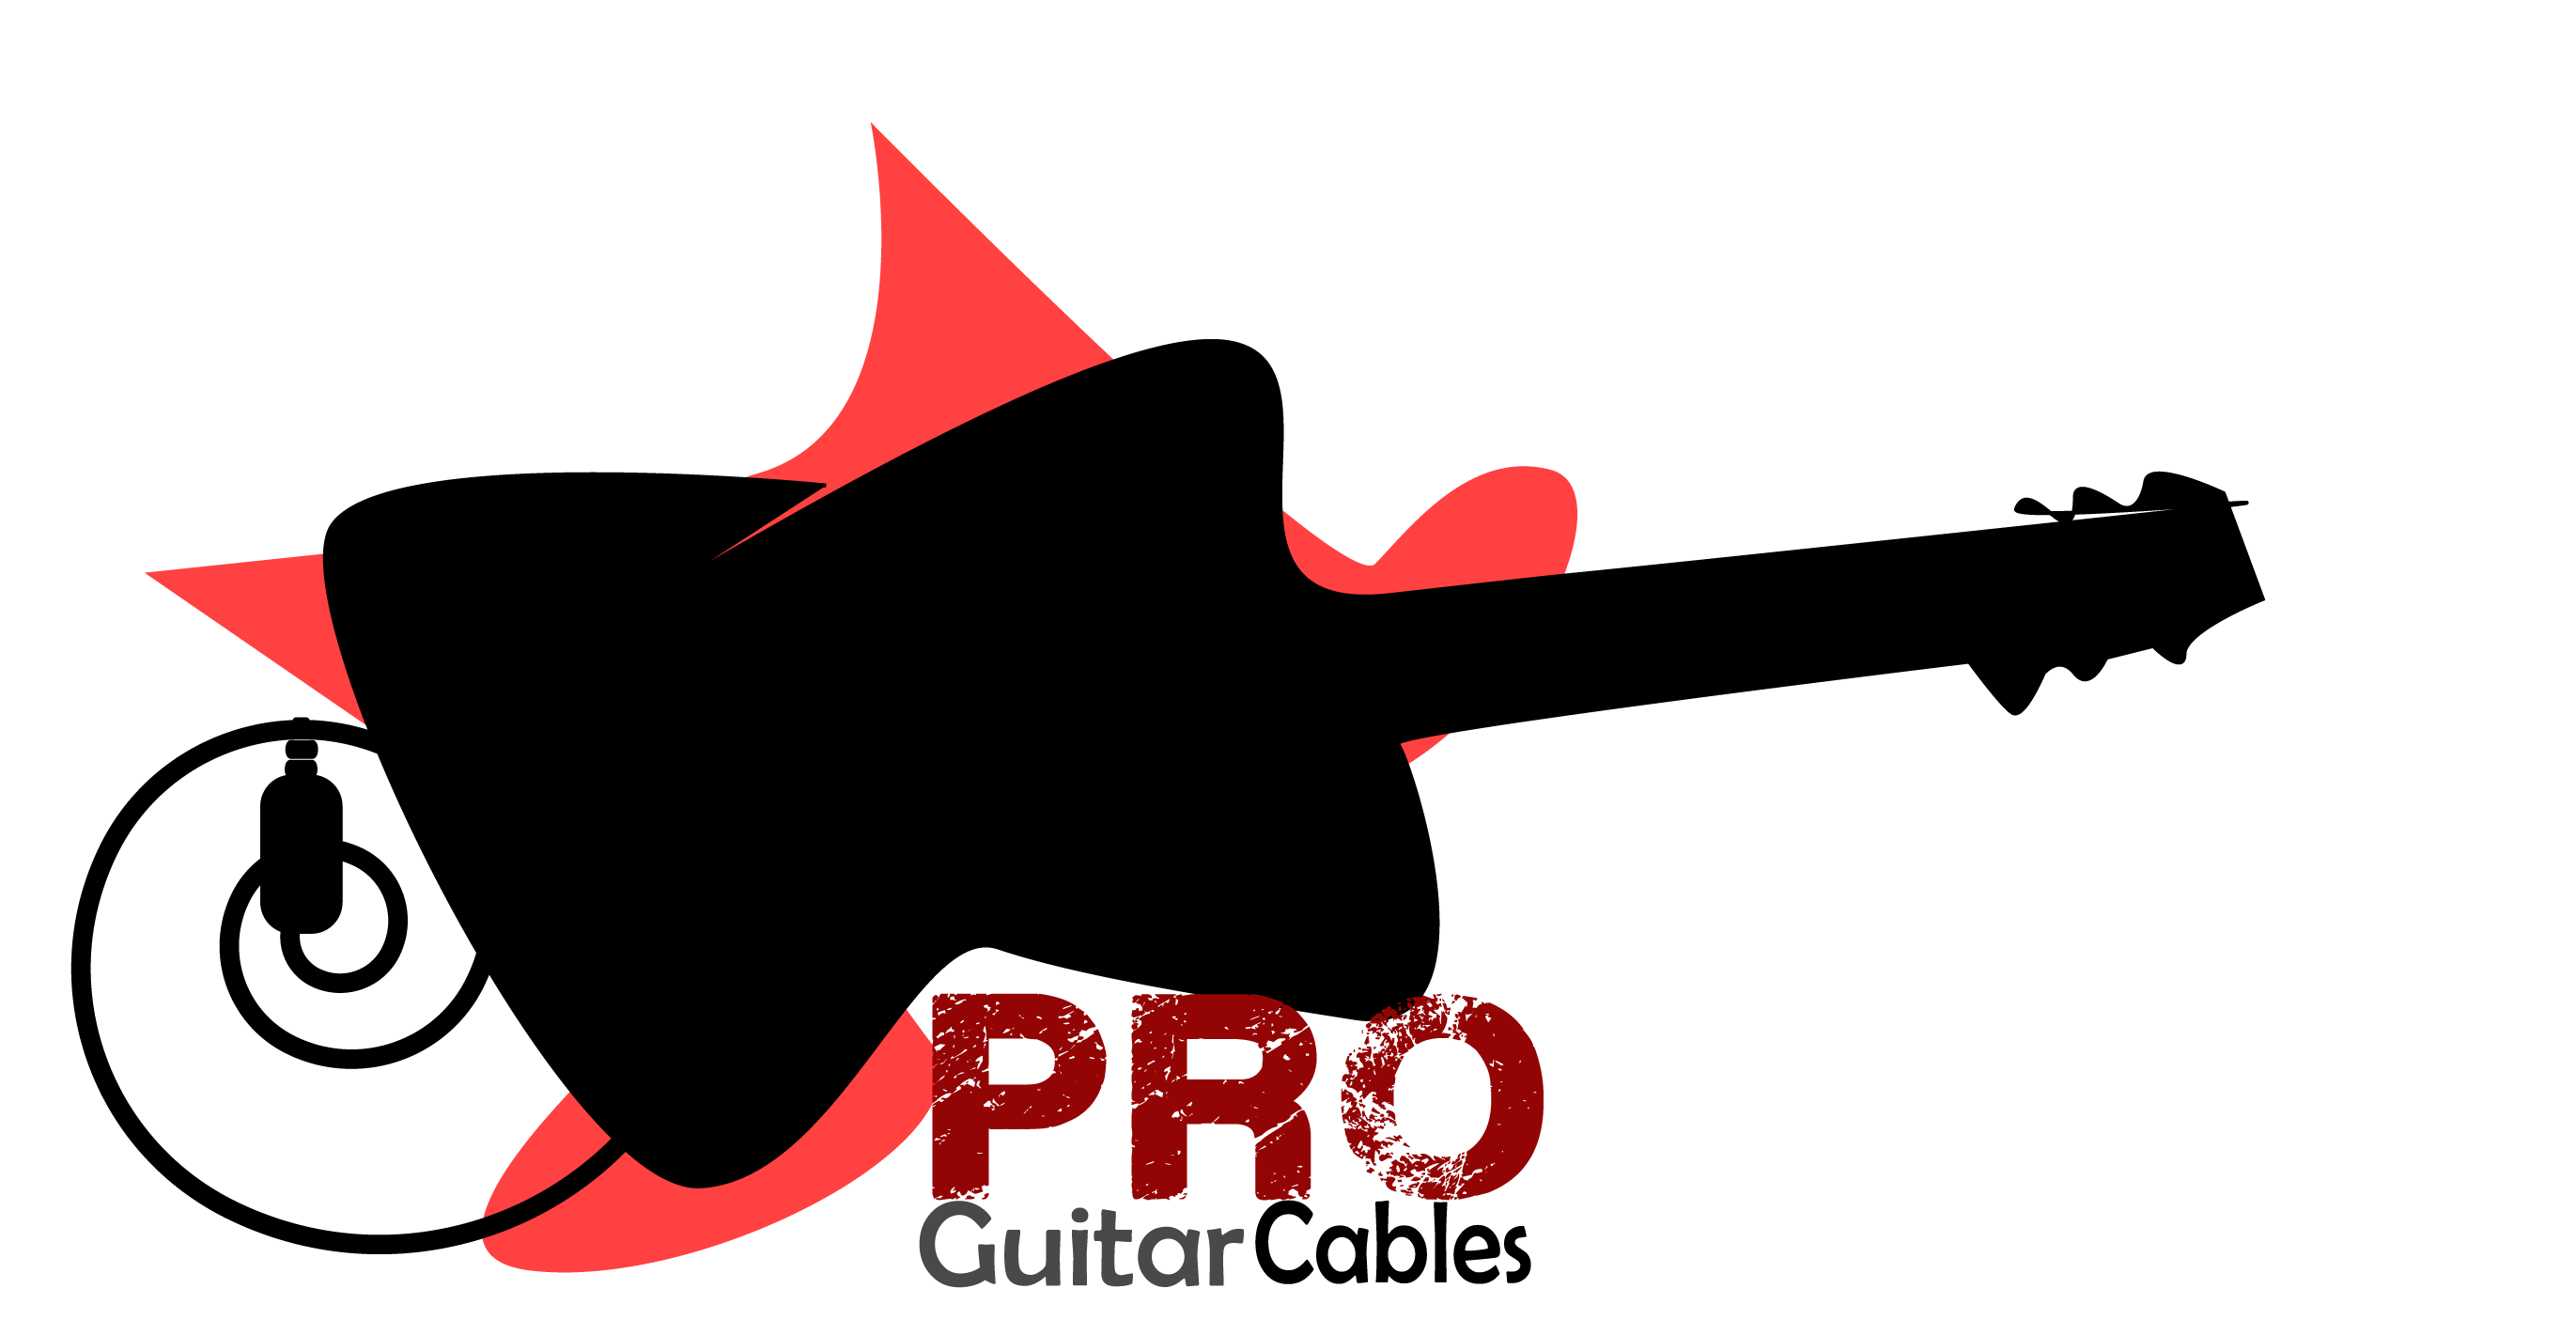 Logo Design by Safal Adam - Entry No. 3 in the Logo Design Contest Pro Guitar Cables Logo Design.